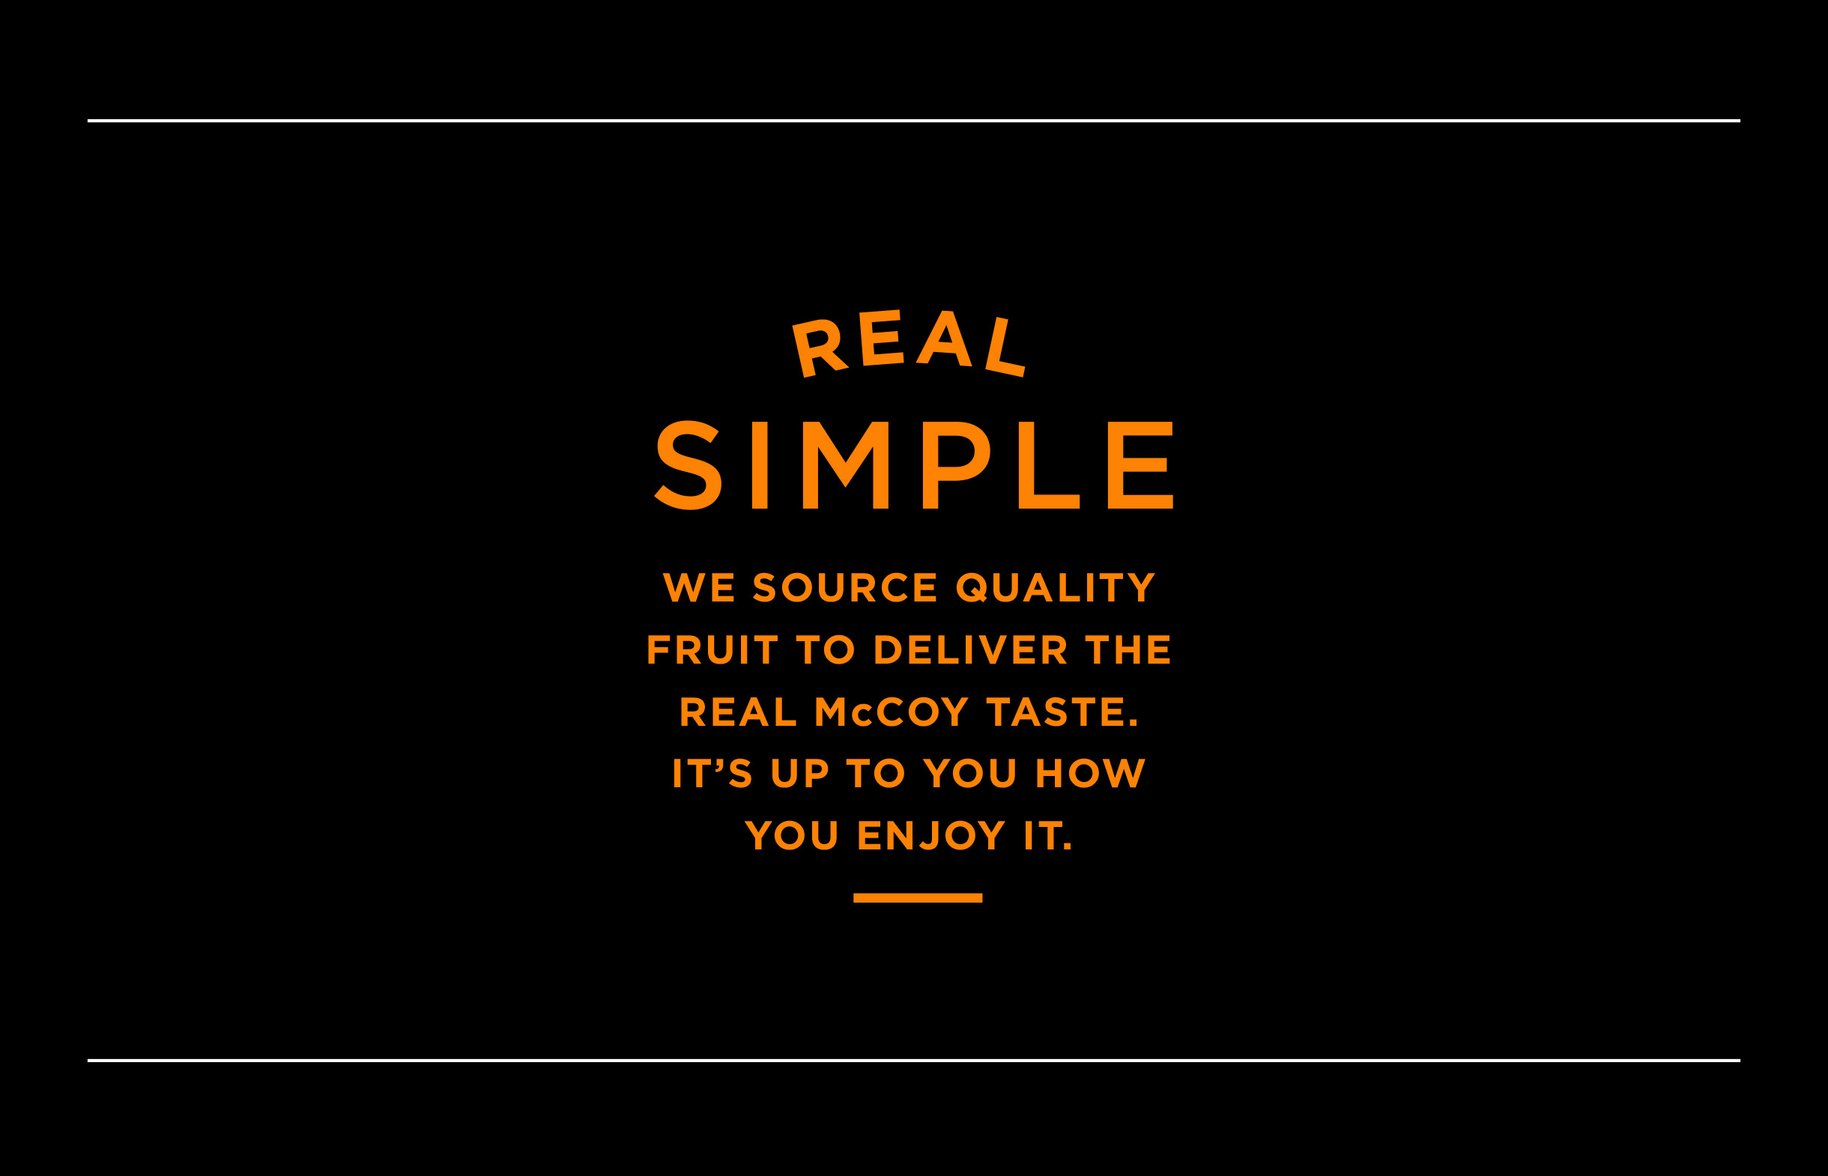 McCoy real simple typography graphic